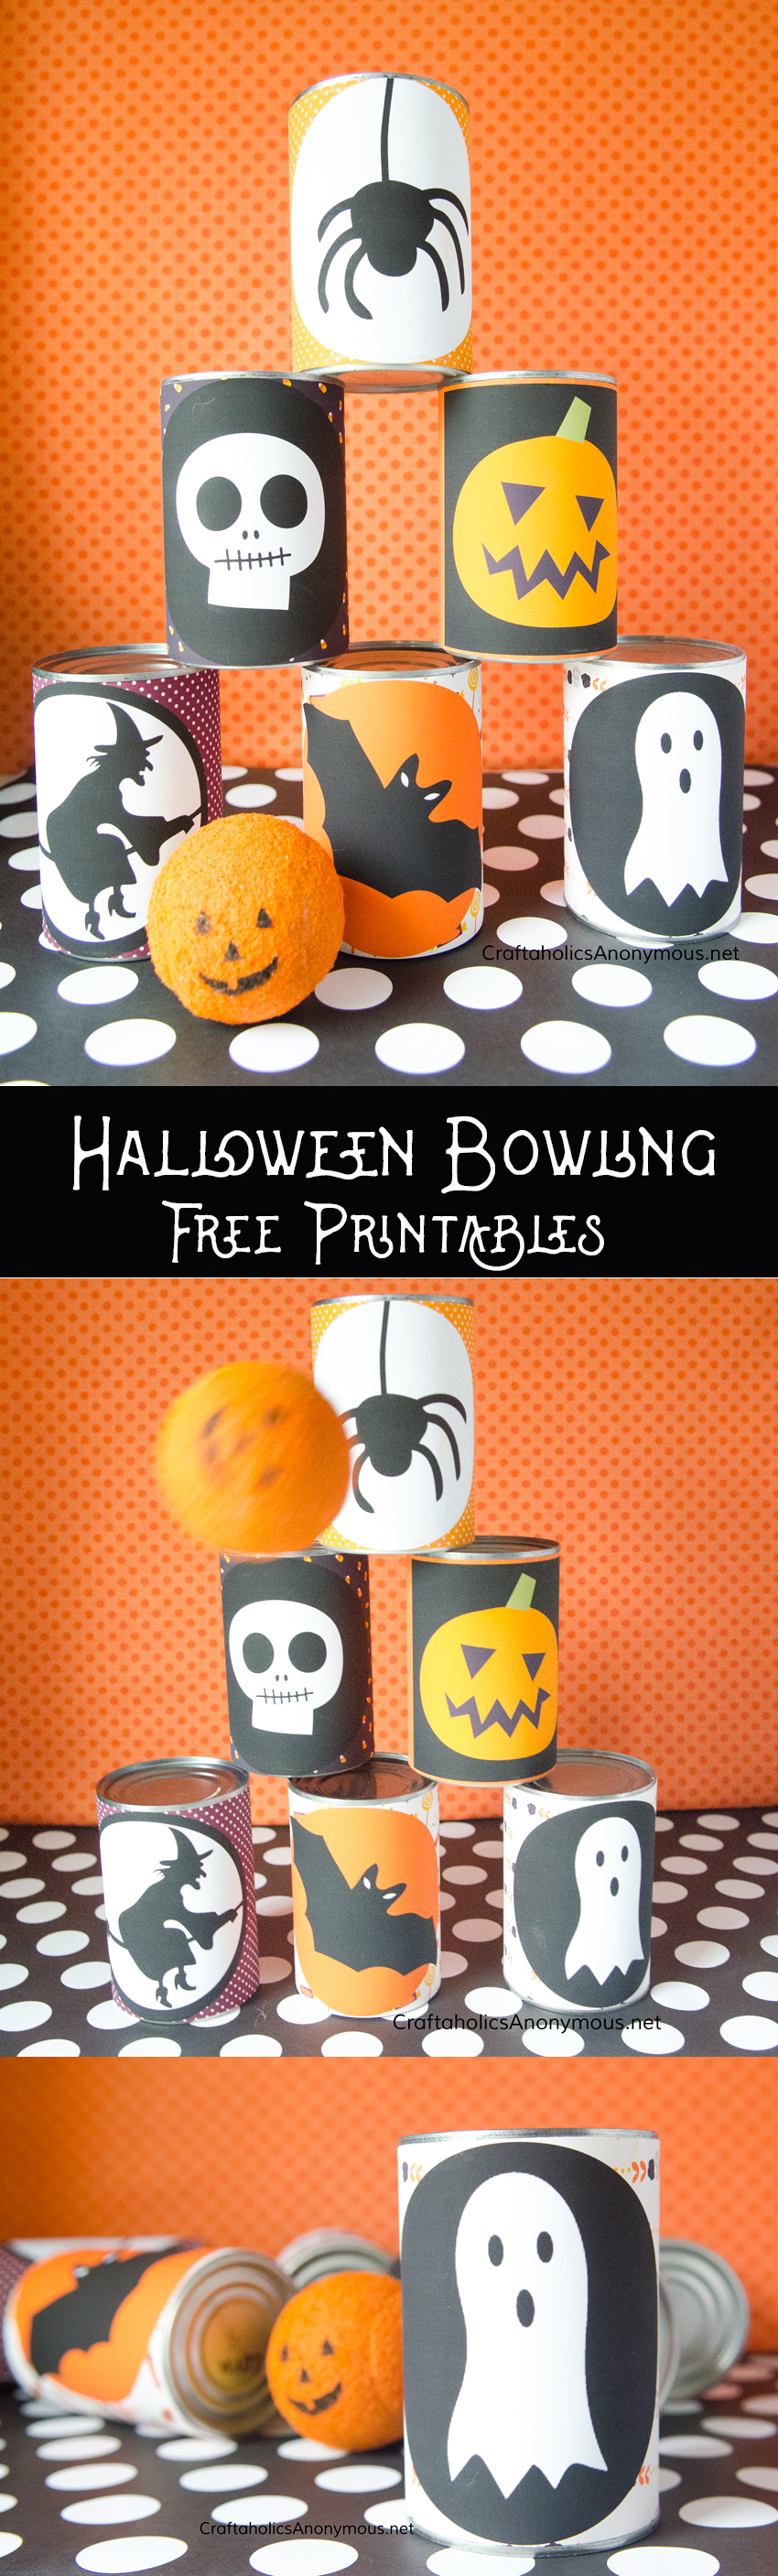 DIY Halloween Bowling Game idea with FREE Printables. Great way to reuse tin cans!